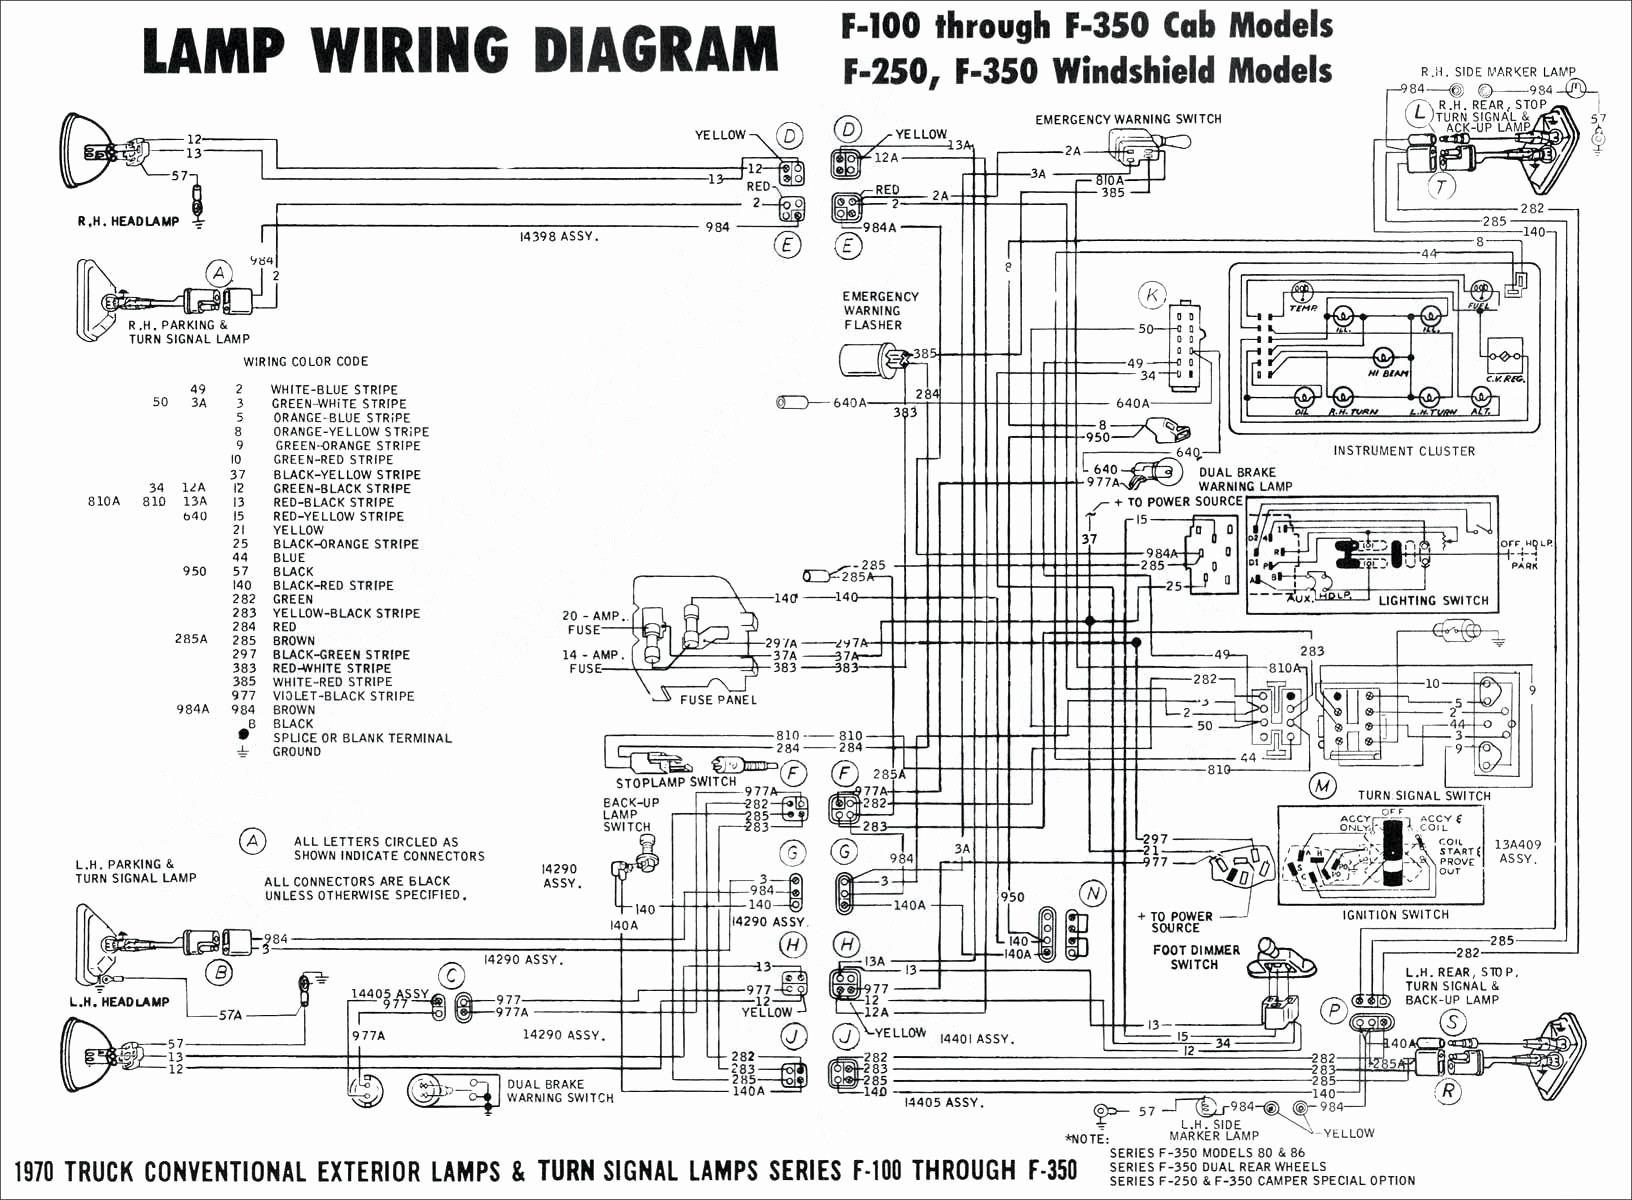 2000 chevy s10 tail light wiring diagram trusted wiring diagram rh dafpods co 1997 Chevy Truck Brake Light Wiring Diagram Simple Brake Light Wiring Diagram